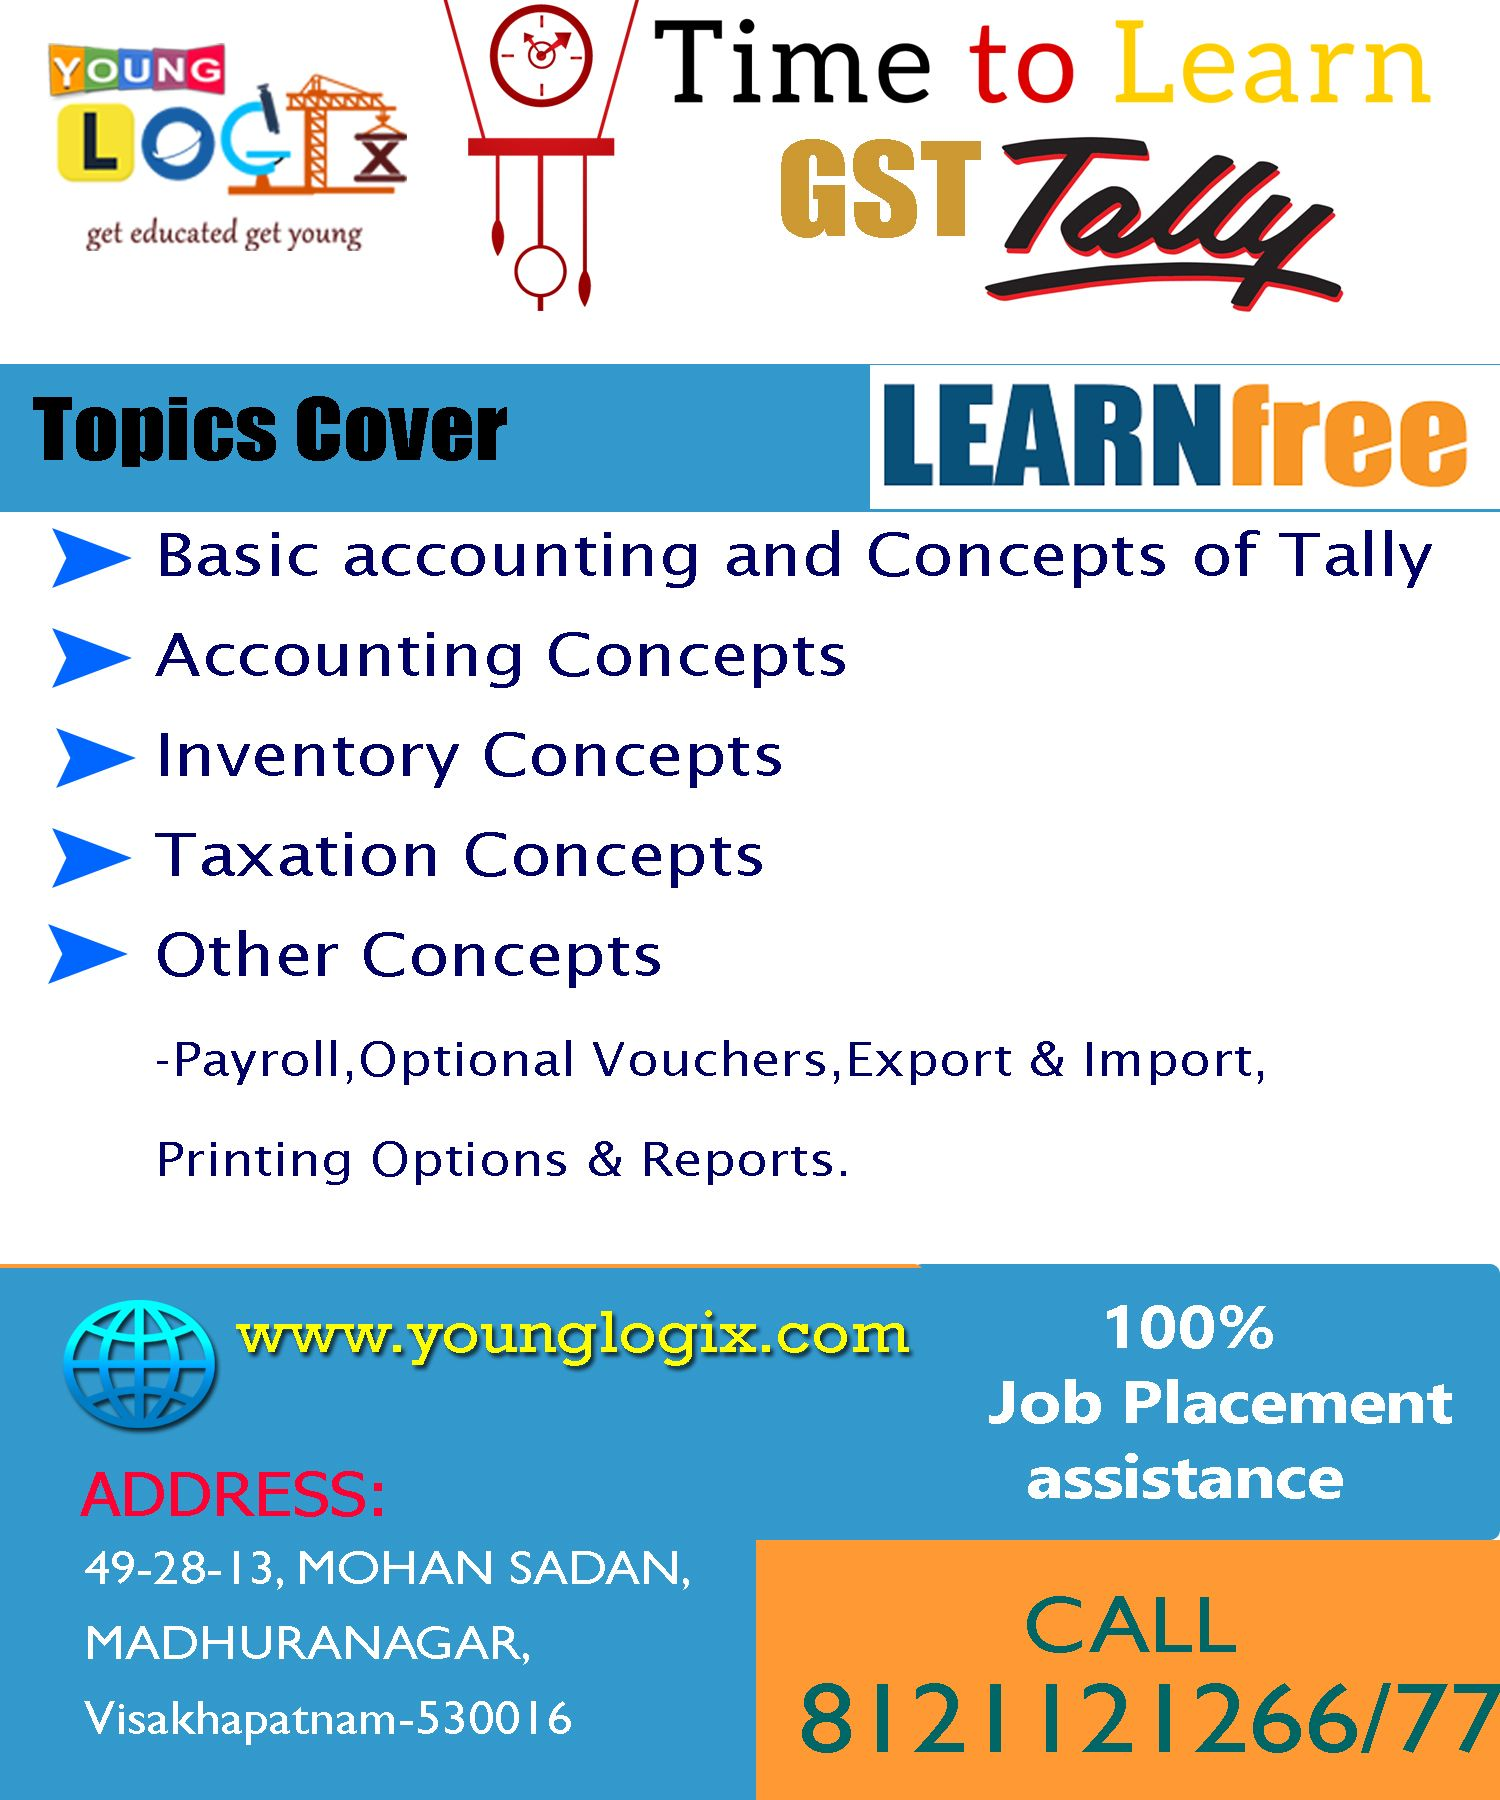 Young Logix Provide Free Tally Course On Latest ERP 9 Version In A Scientifically DesignedIt Is Complete Accounting Software Learning Platform